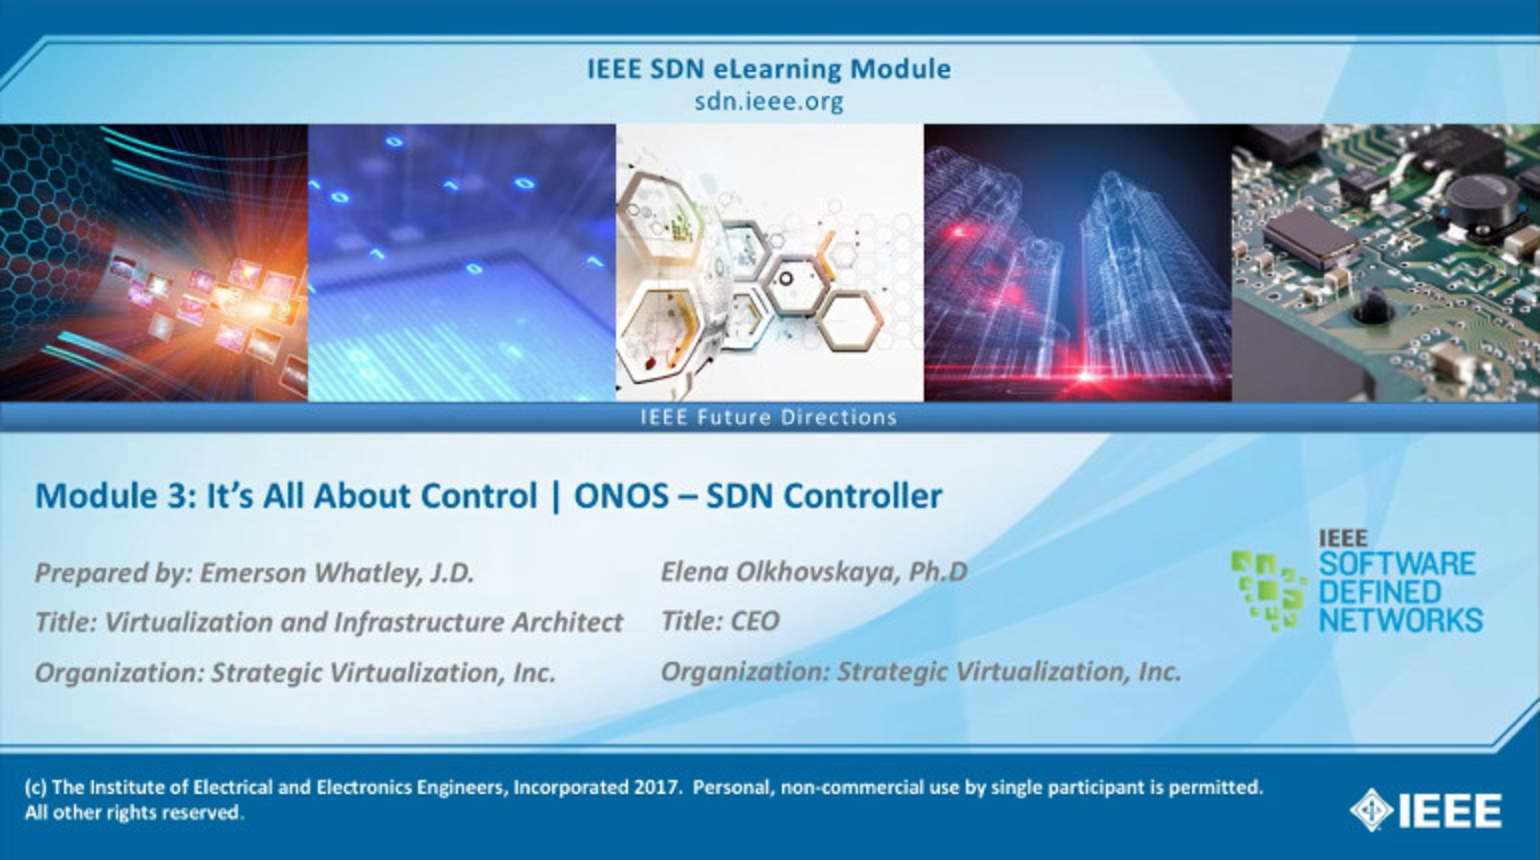 IEEE SDN: ONOS Module 3 - It's All About Control: ONOS SDN Controller